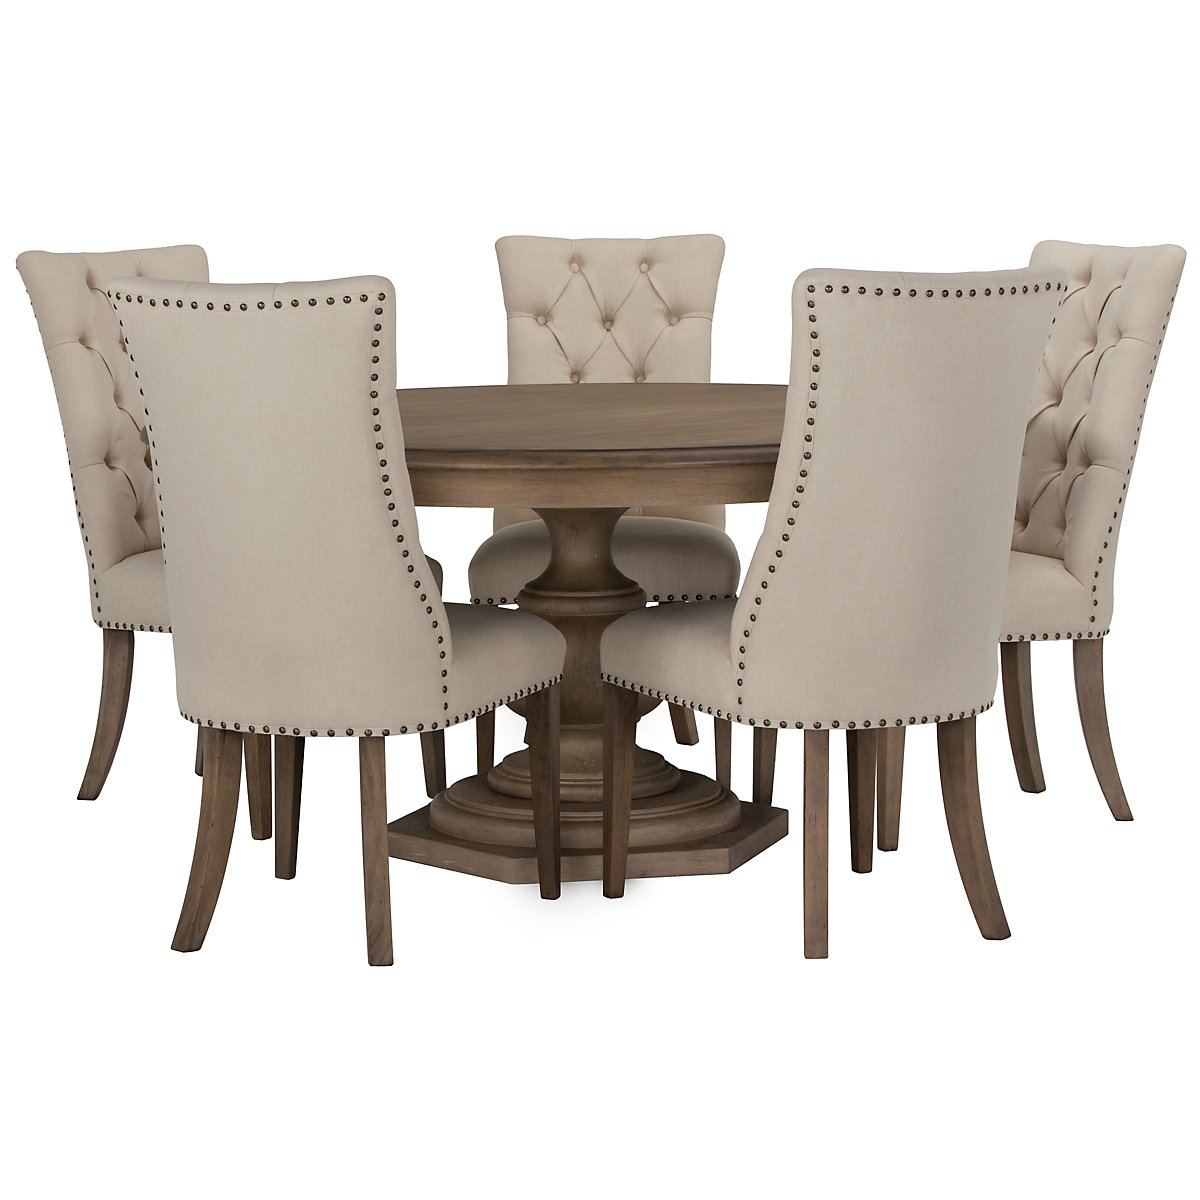 City furniture haddie light tone round table 4 for Round dining table set for 4